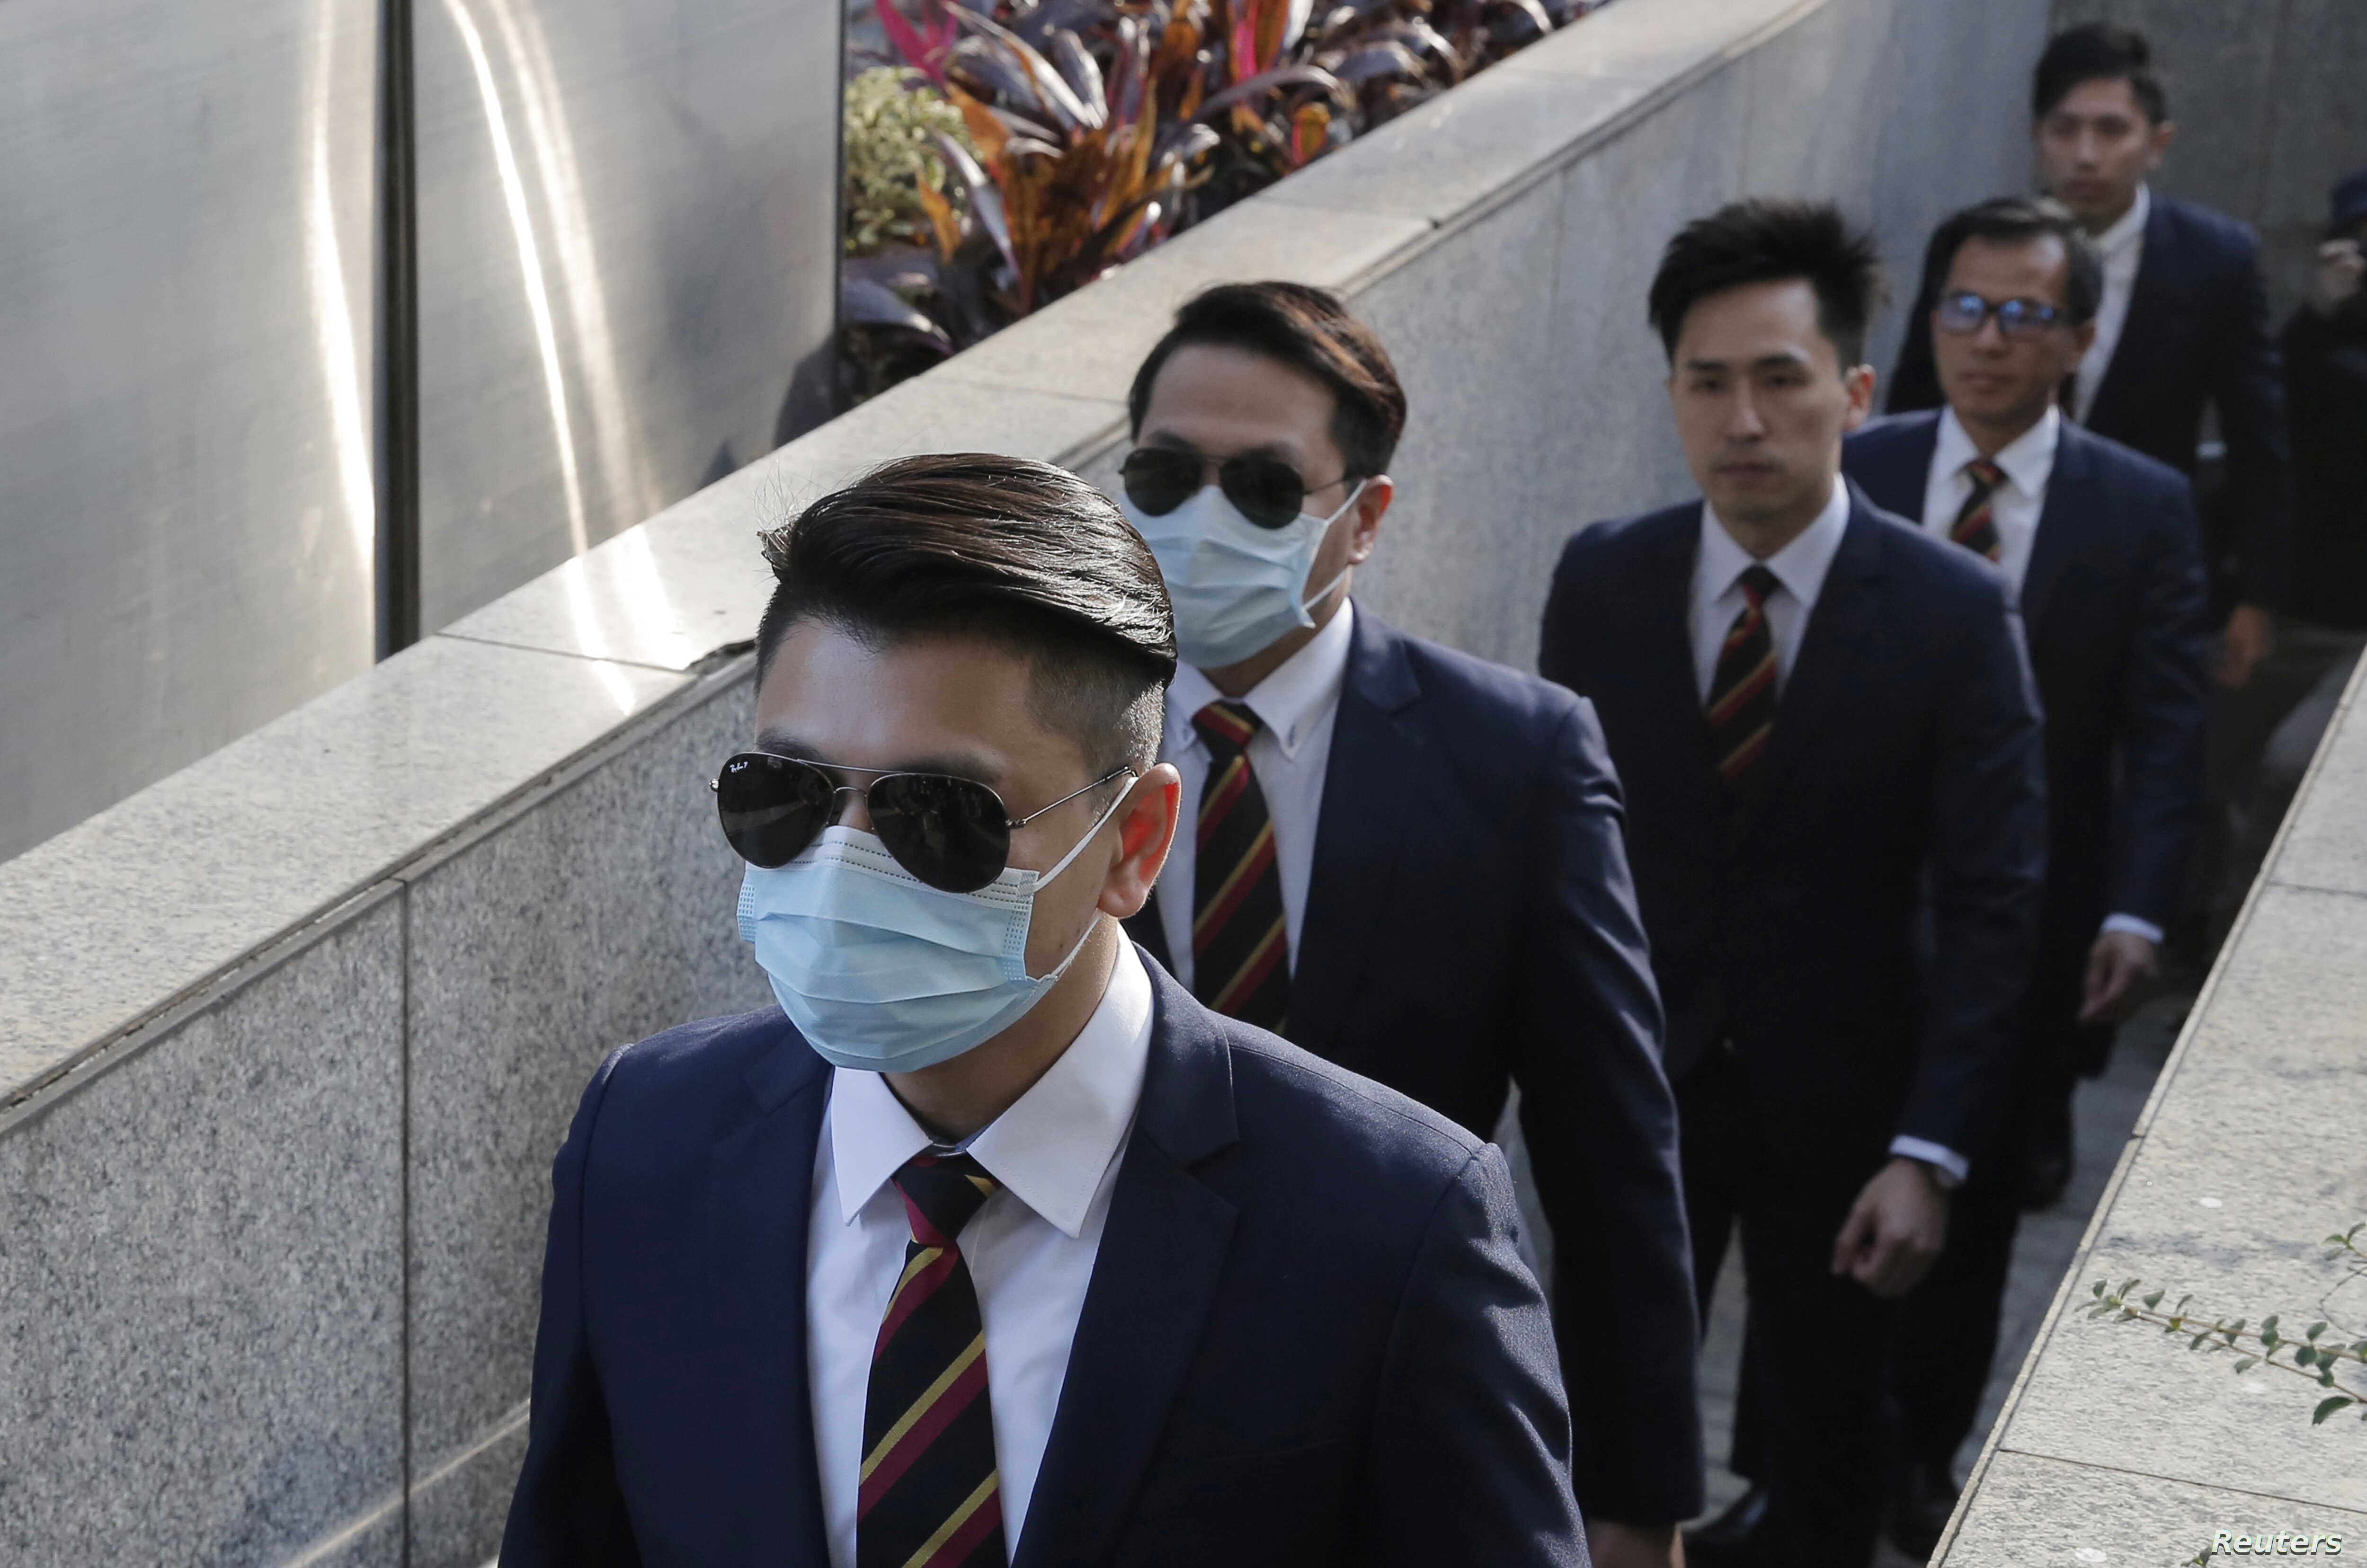 FILE - In this Feb. 14, 2017 file photo, five of the seven Hong Kong police officers arrive the District Court in Hong Kong as they were charged with assaulting a pro-democracy activist in an incident on Oct. 15 2014.